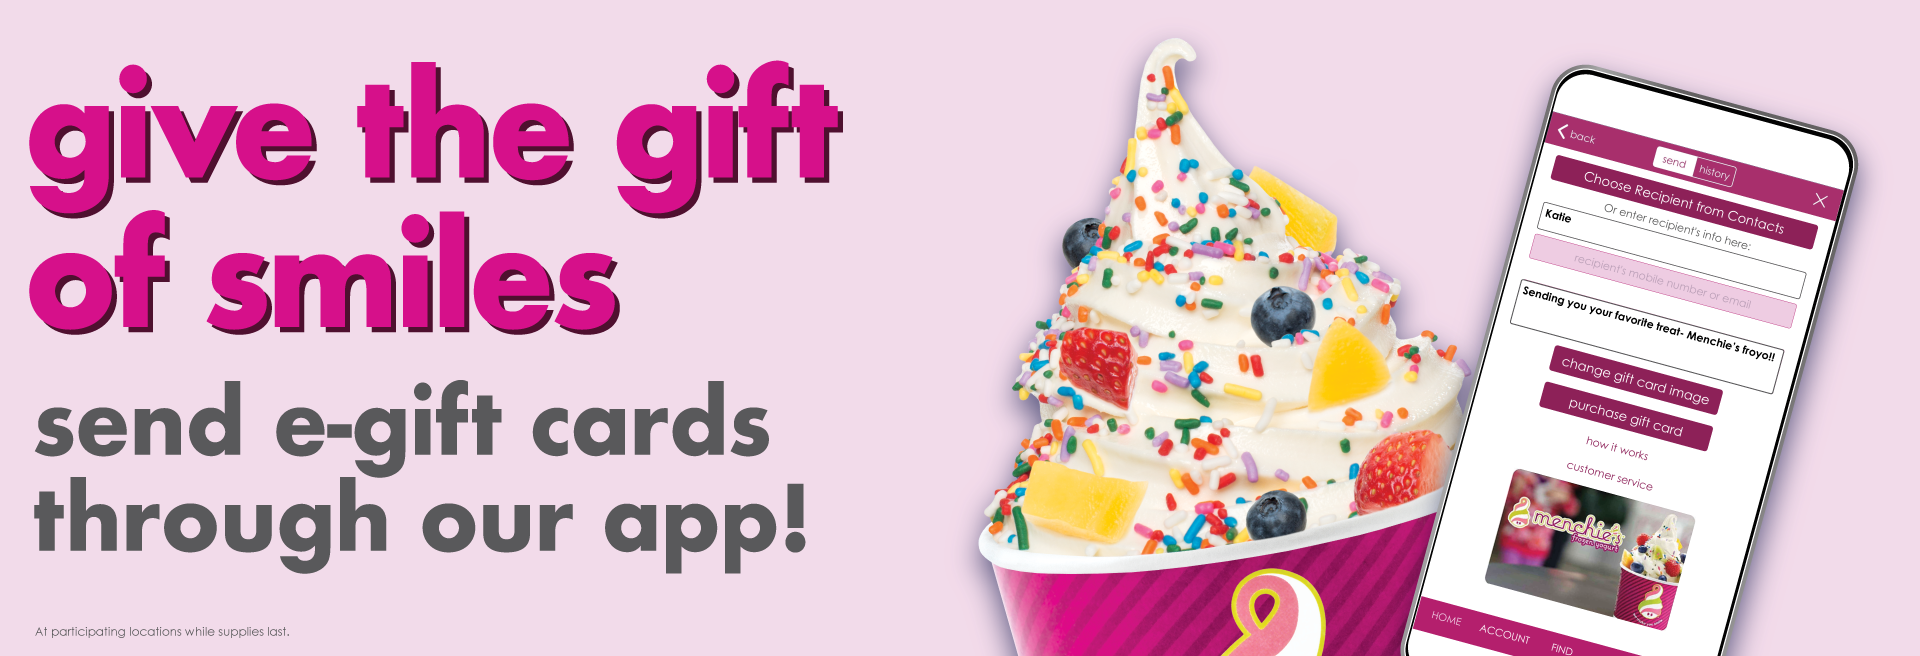 Sweeten their day with a Menchie's e-gift card! Treat your mom and your favorite grad to a Menchie's e-gift card through our app!